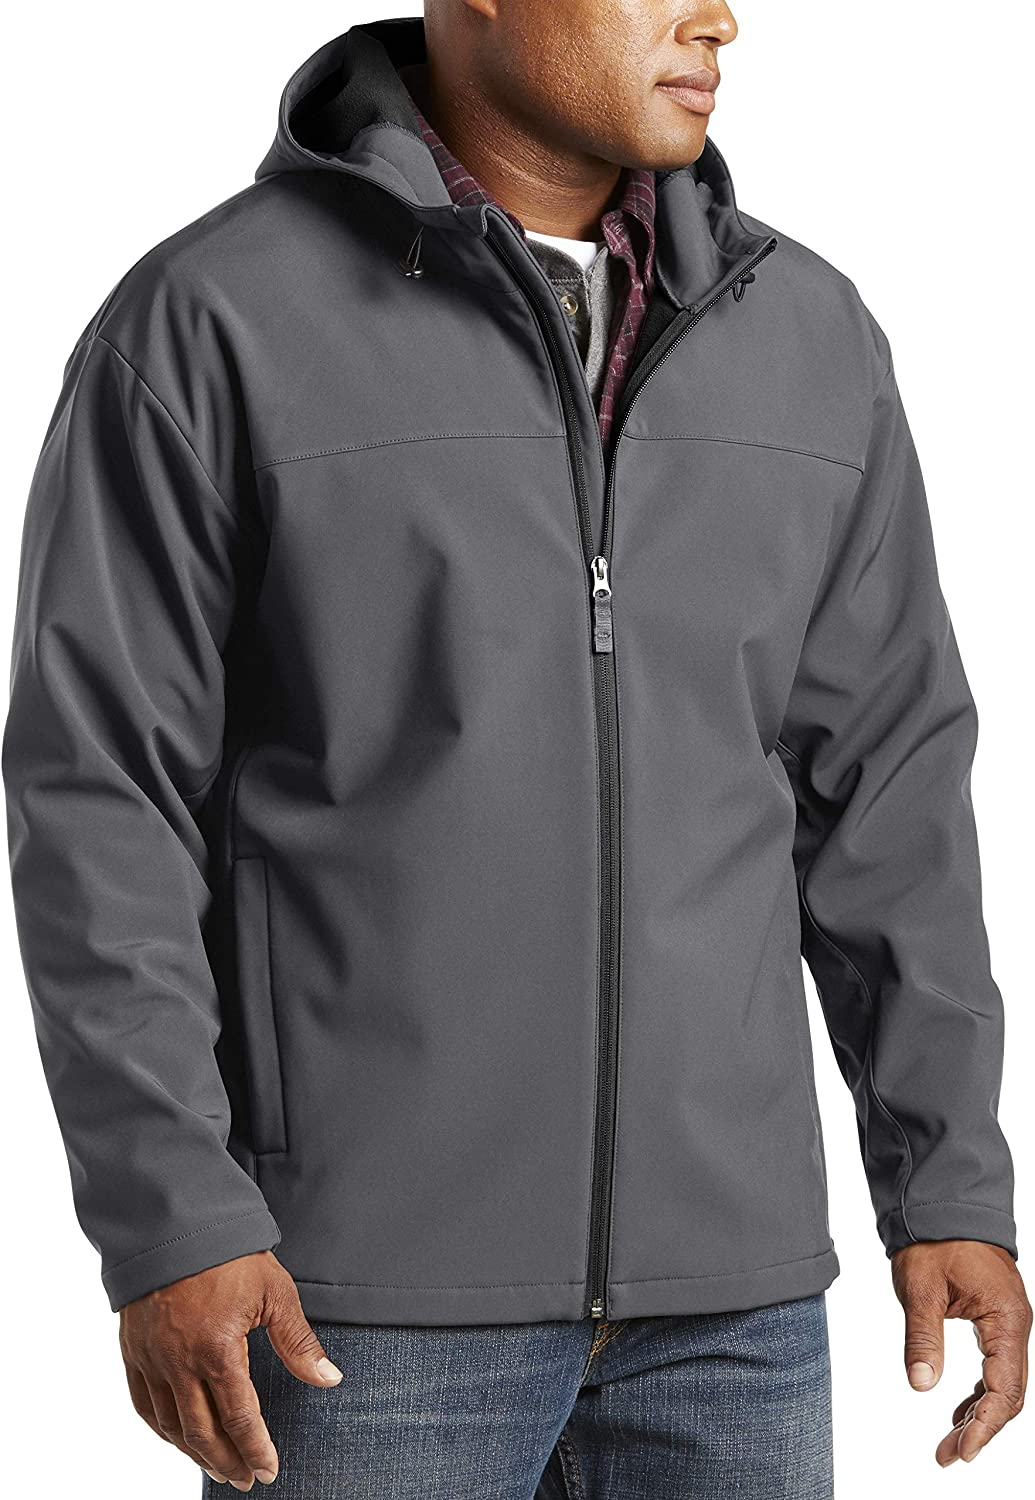 Harbor Long Beach Mall Bay by DXL Outstanding Big and Hooded Jacket Bonded Tall Fleece